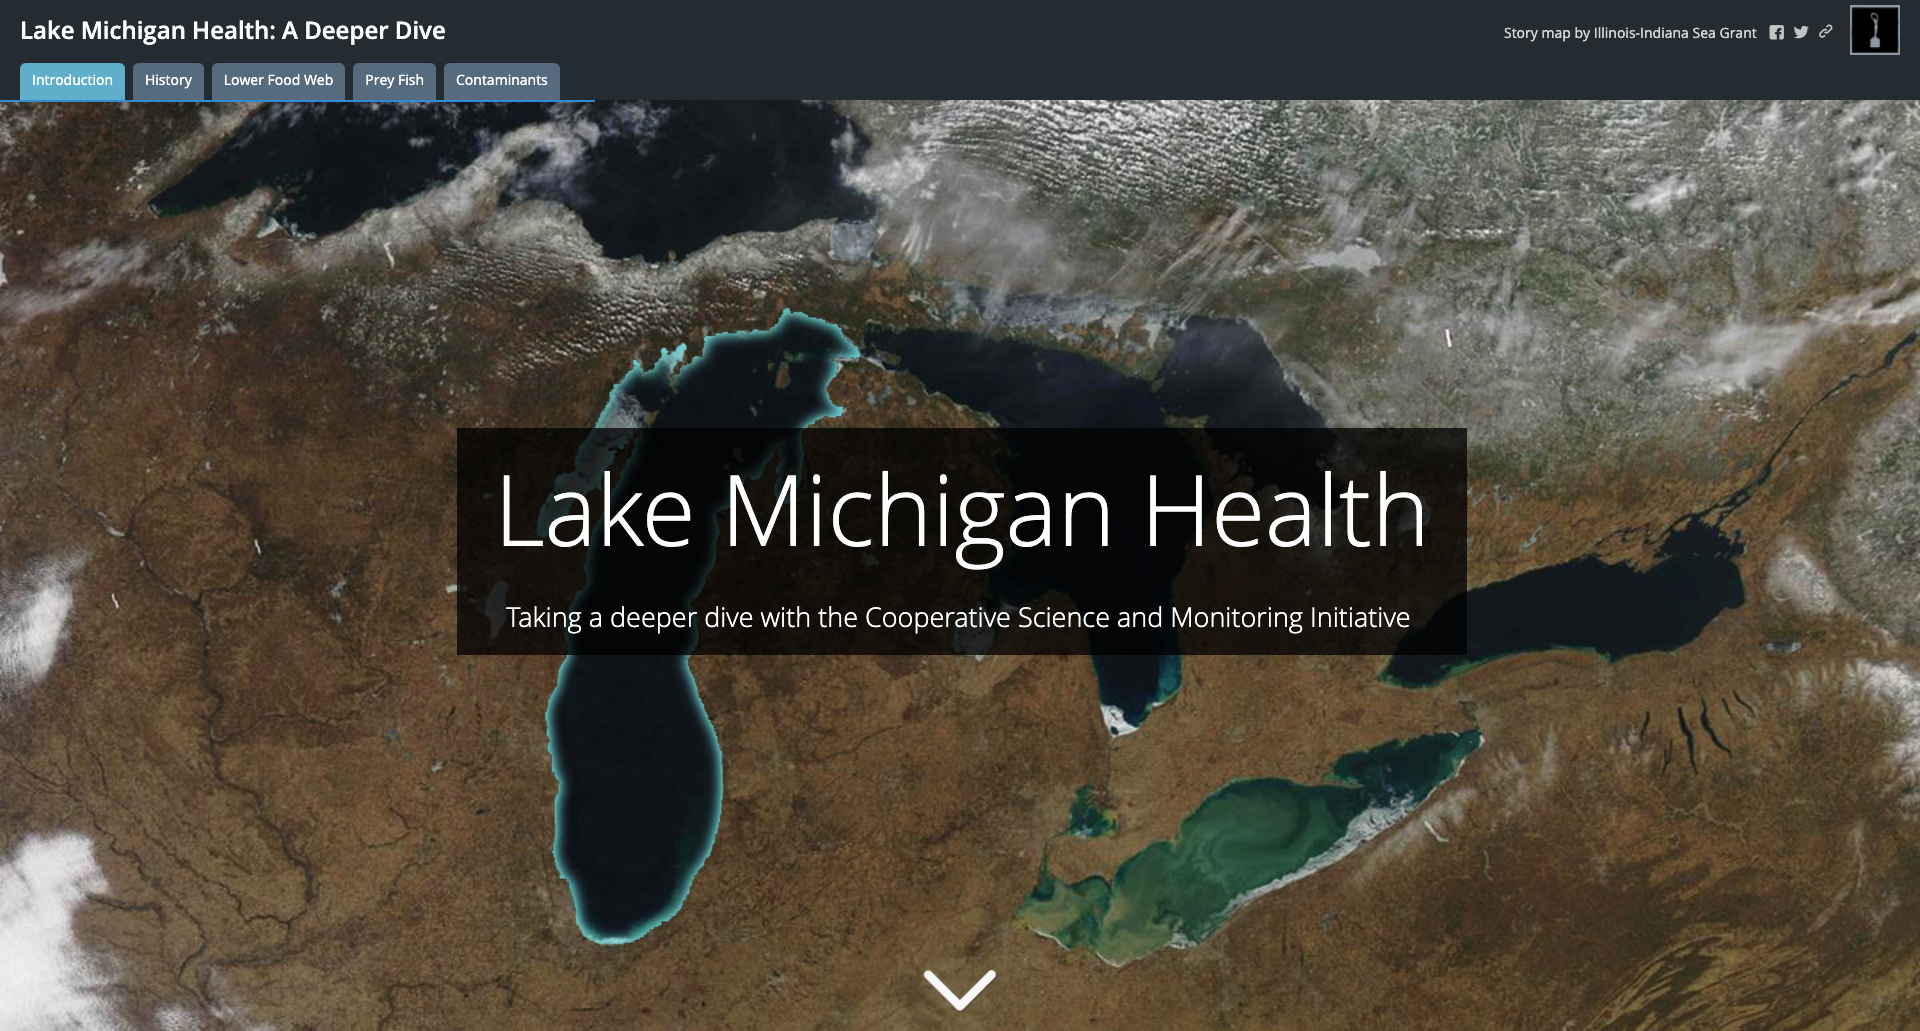 Lake Michigan Health website homepage